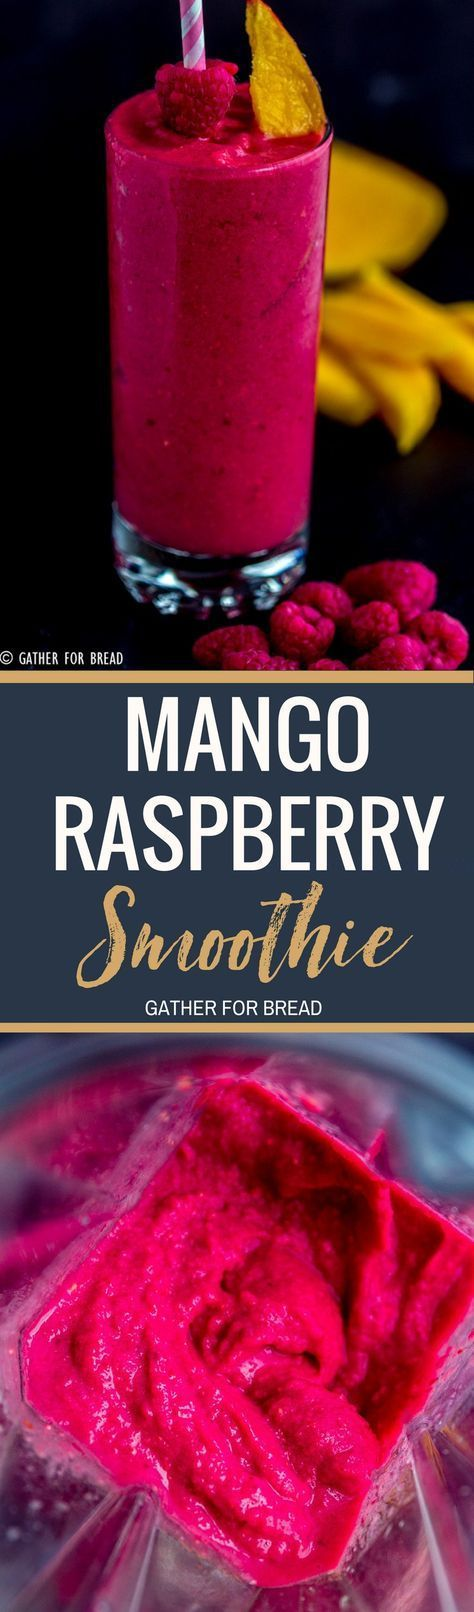 Mango Raspberry Smoothie - How to make thisnutritiousmango smoothie with berries and tropical flavors. It's the perfect healthy way to go. Deliciousand smooth, made without yogurt!